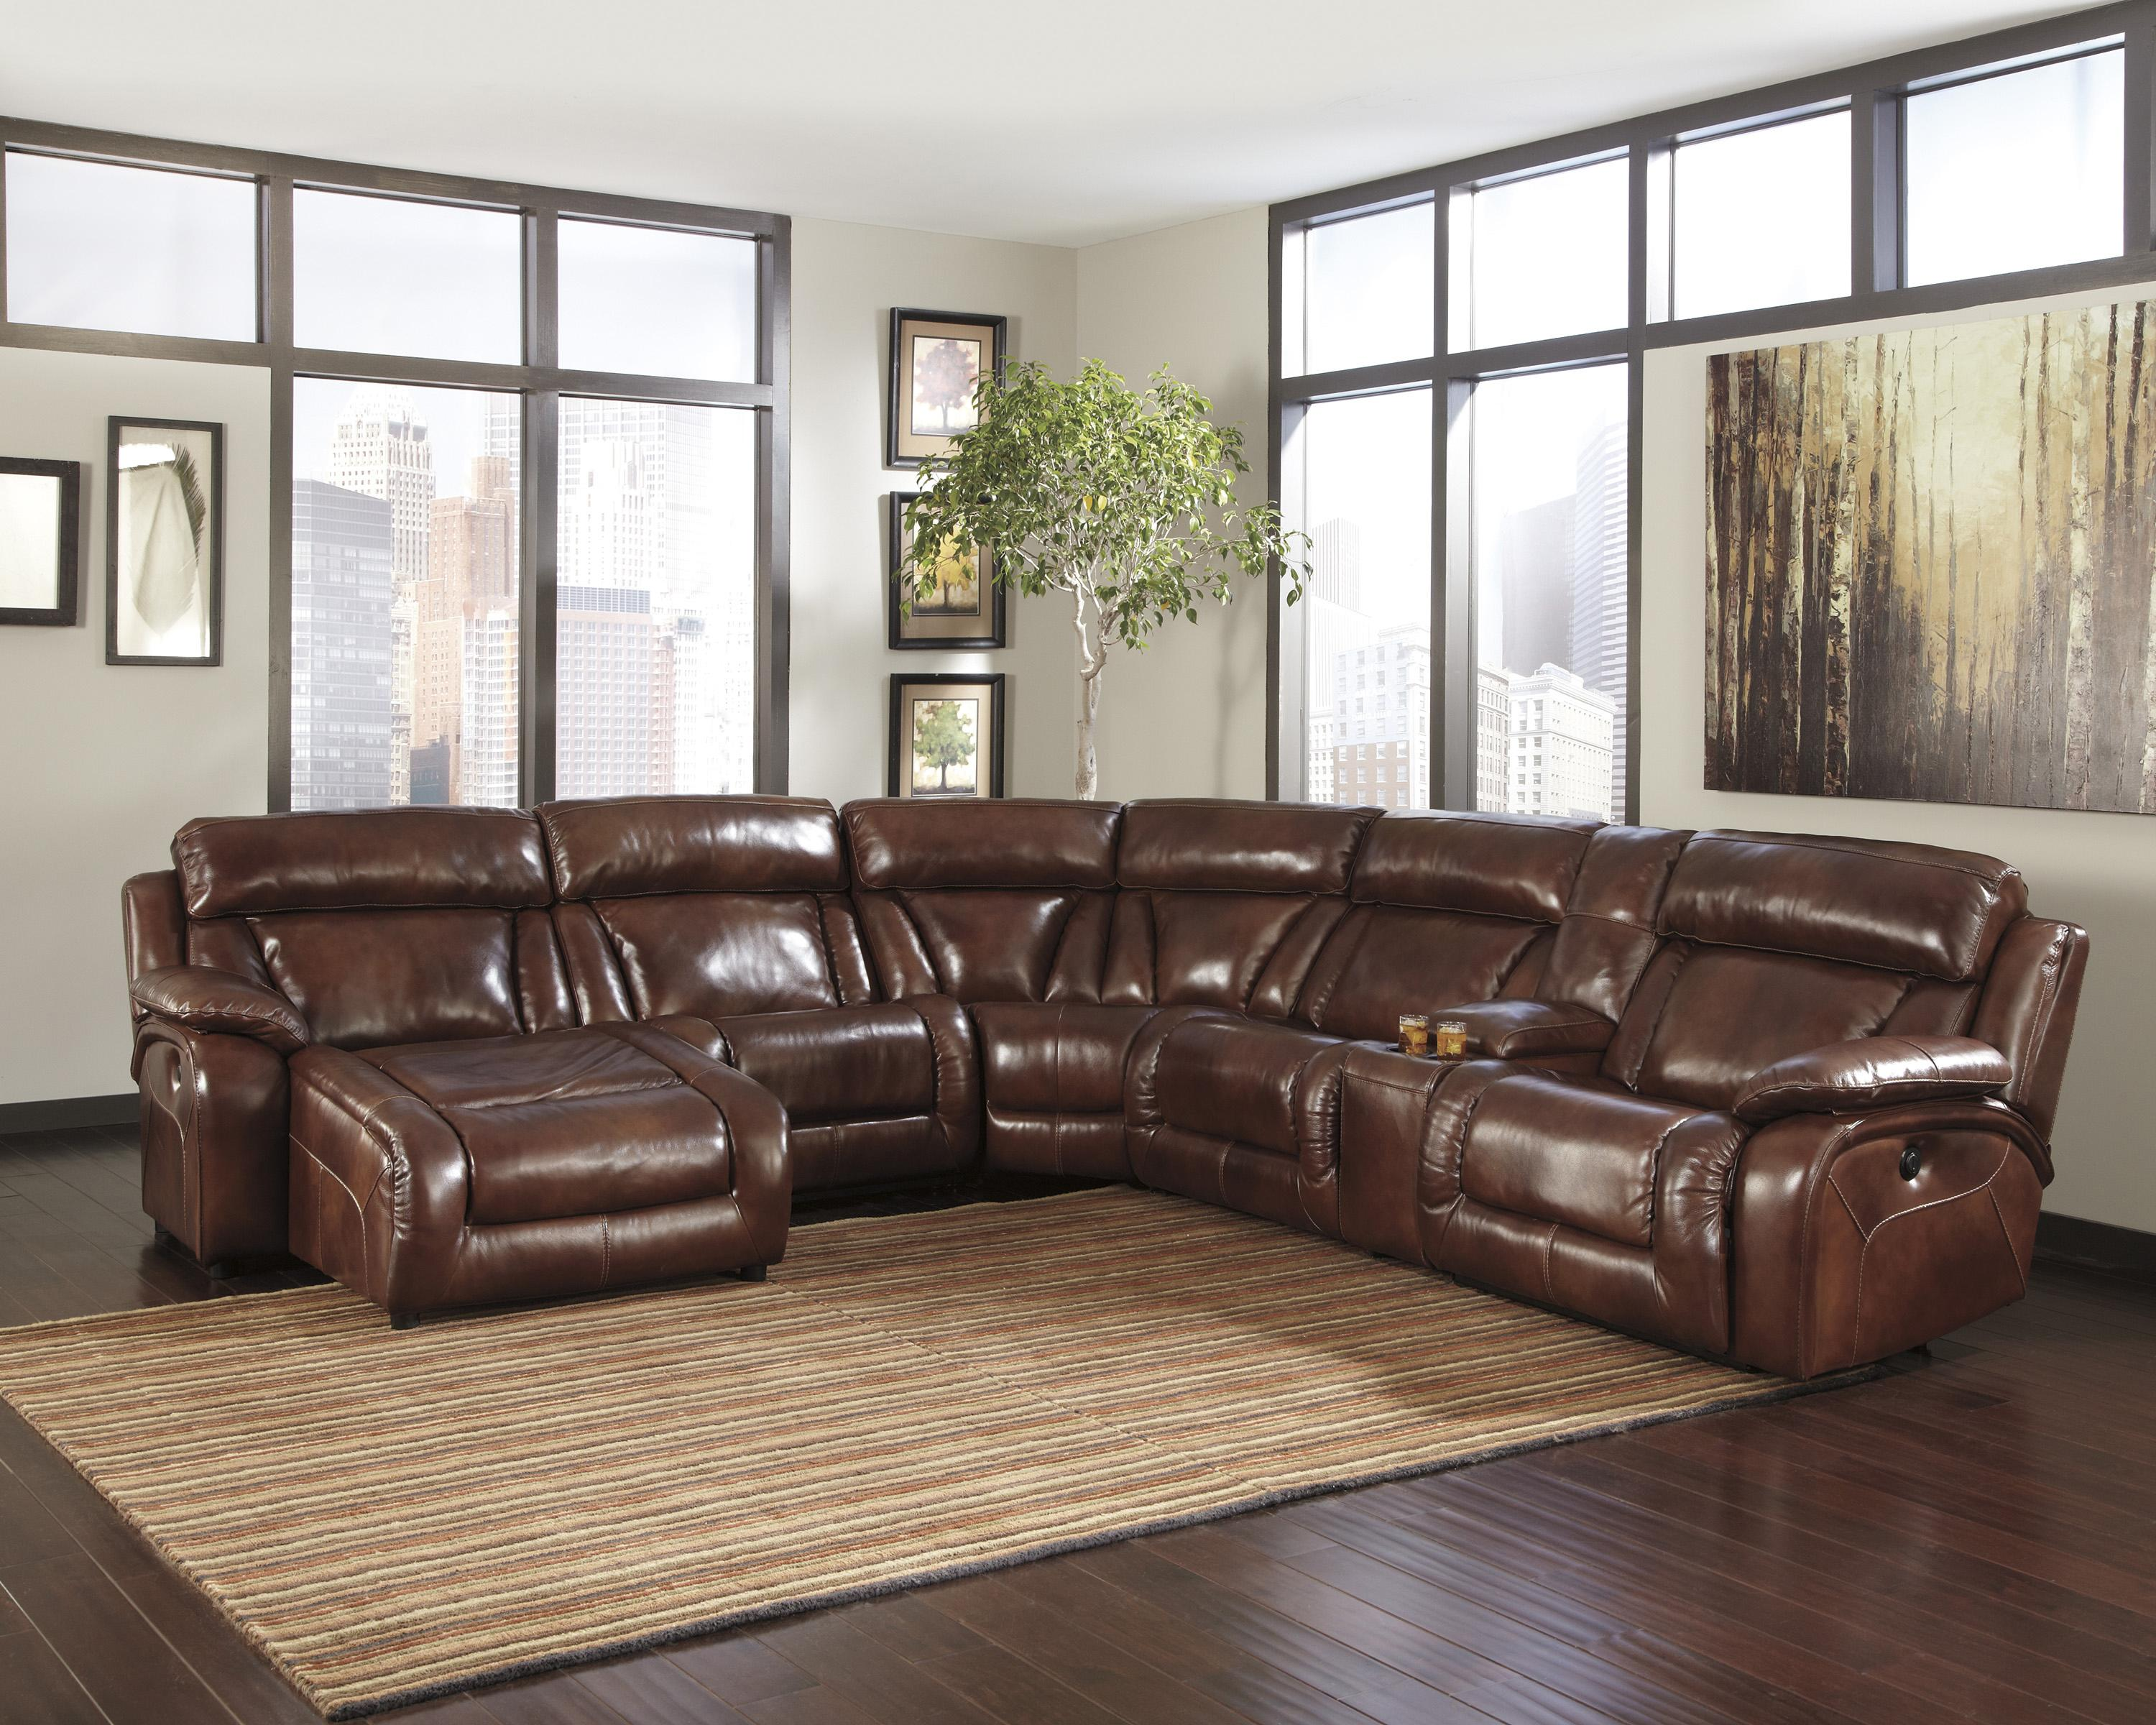 Signature Design by Ashley Elemen Contemporary Reclining Sectional Sofa - Item Number: U9920179+2x46+77+57+62